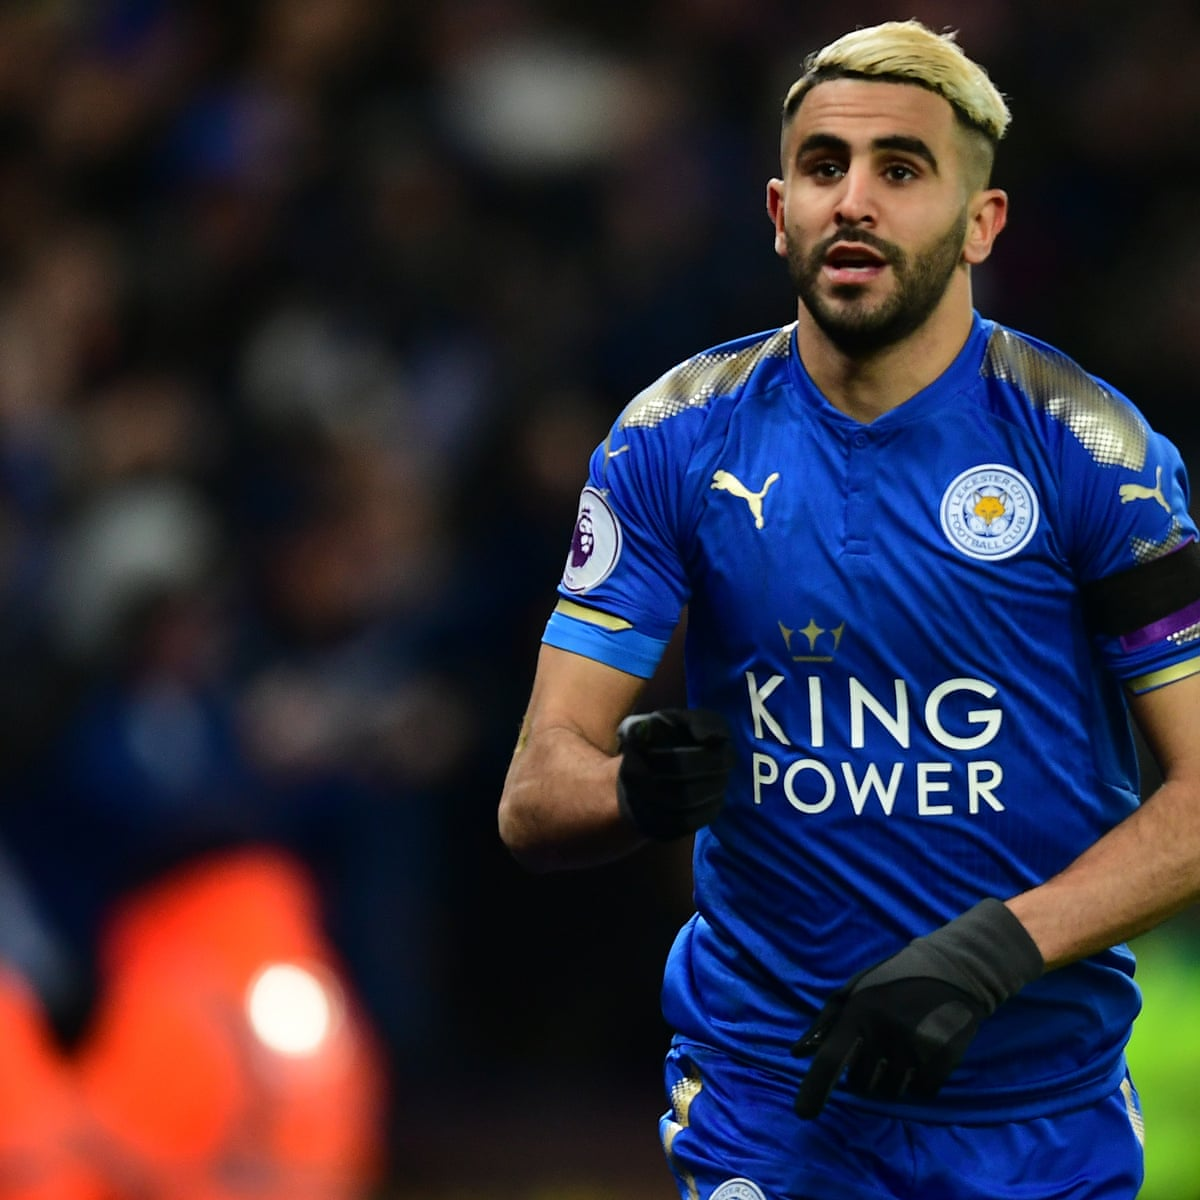 Leicester tell Manchester City it will take 'mind-blowing' offer to sign  Mahrez | Manchester City